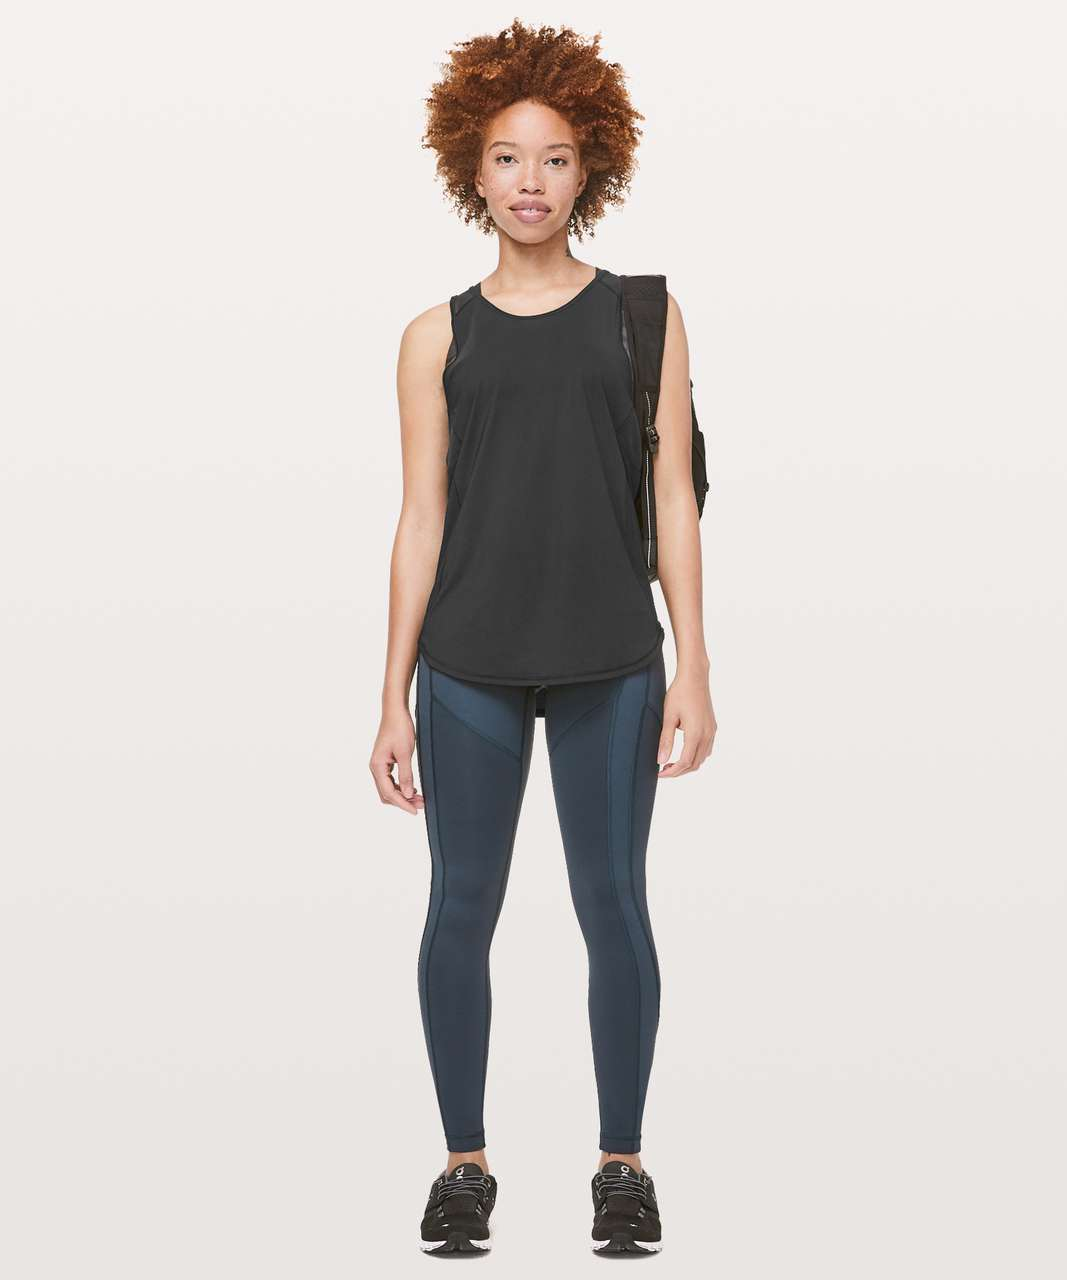 Lululemon Sculpt Tank II - Black